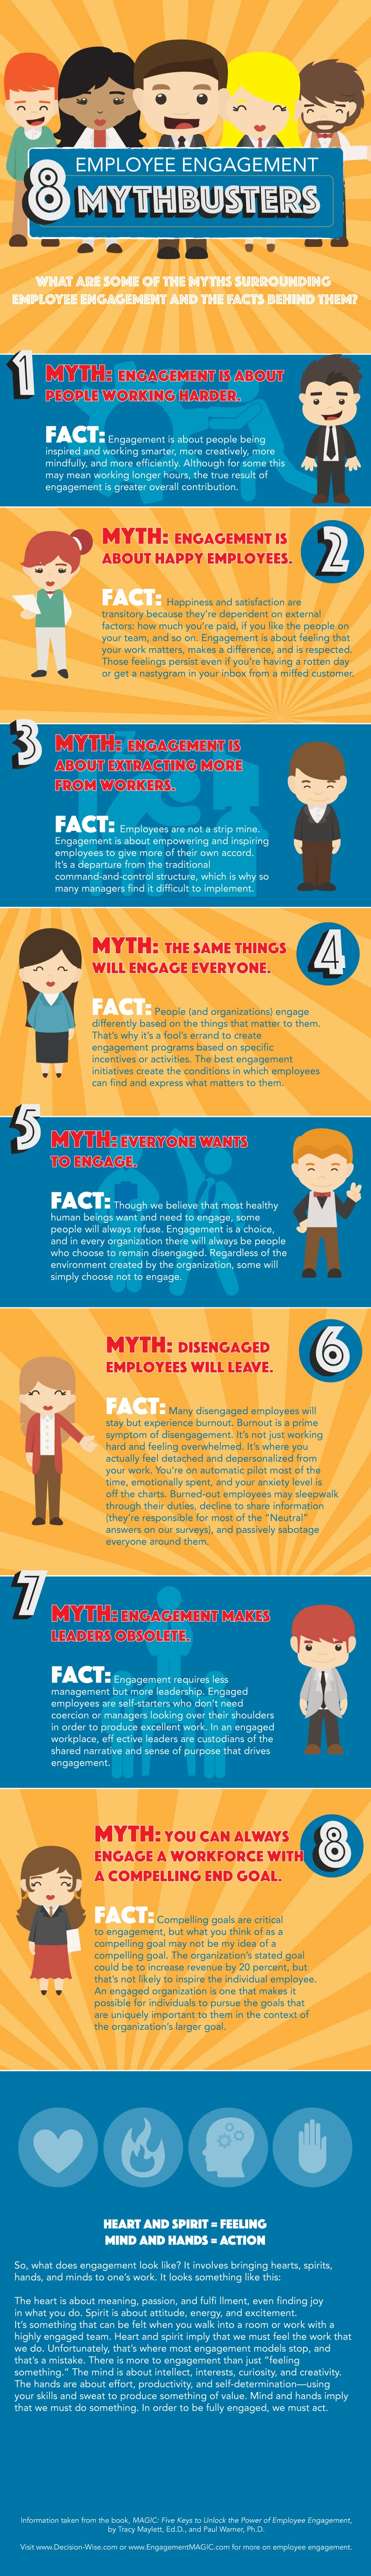 Infographic-8-Employee-Engagement-Mythbusters